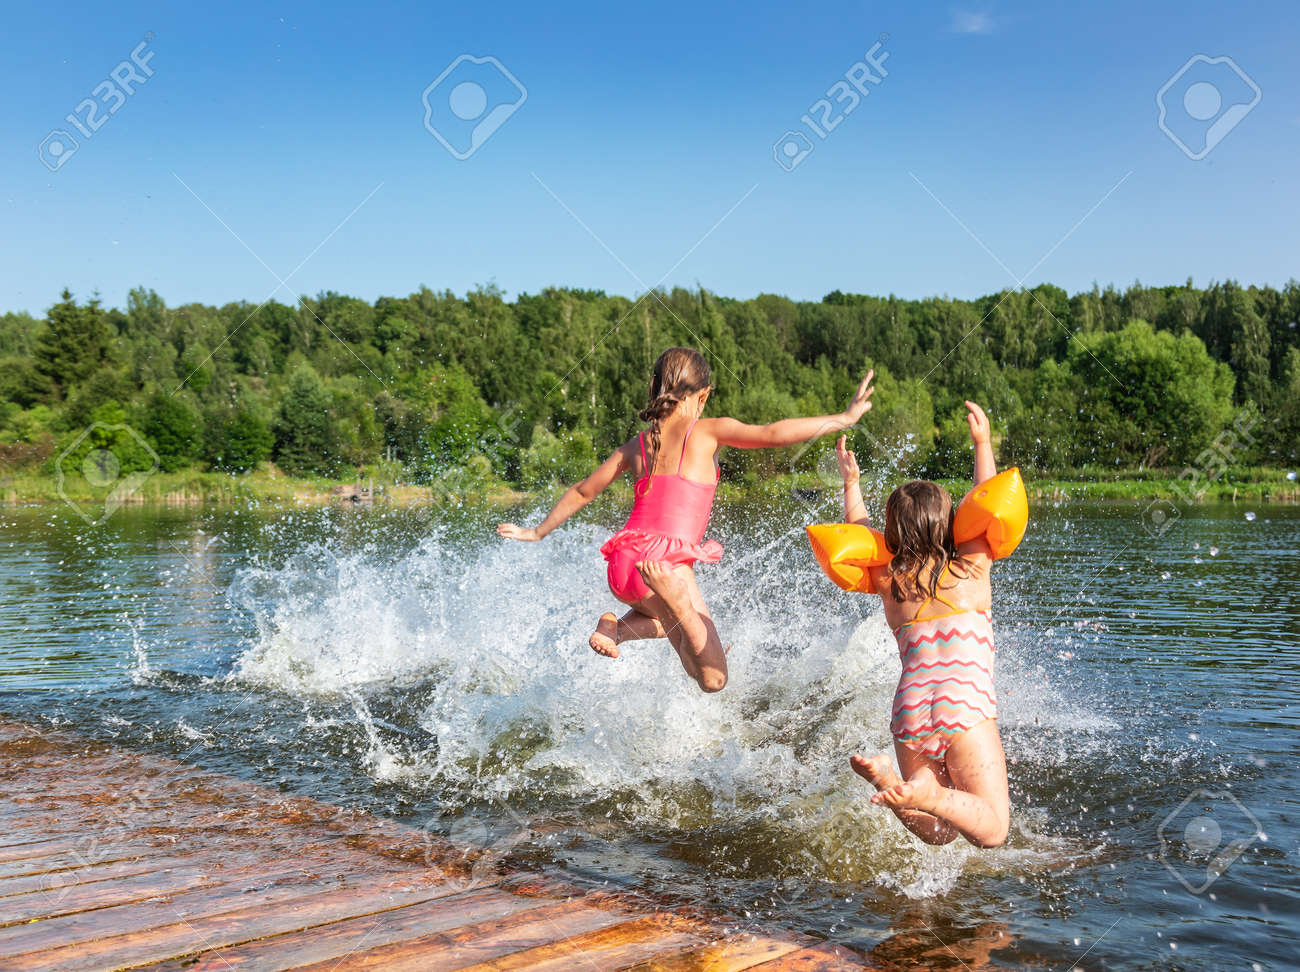 Happy little girls having fun playing in a lake jumping into water during summer holidays - 167176342